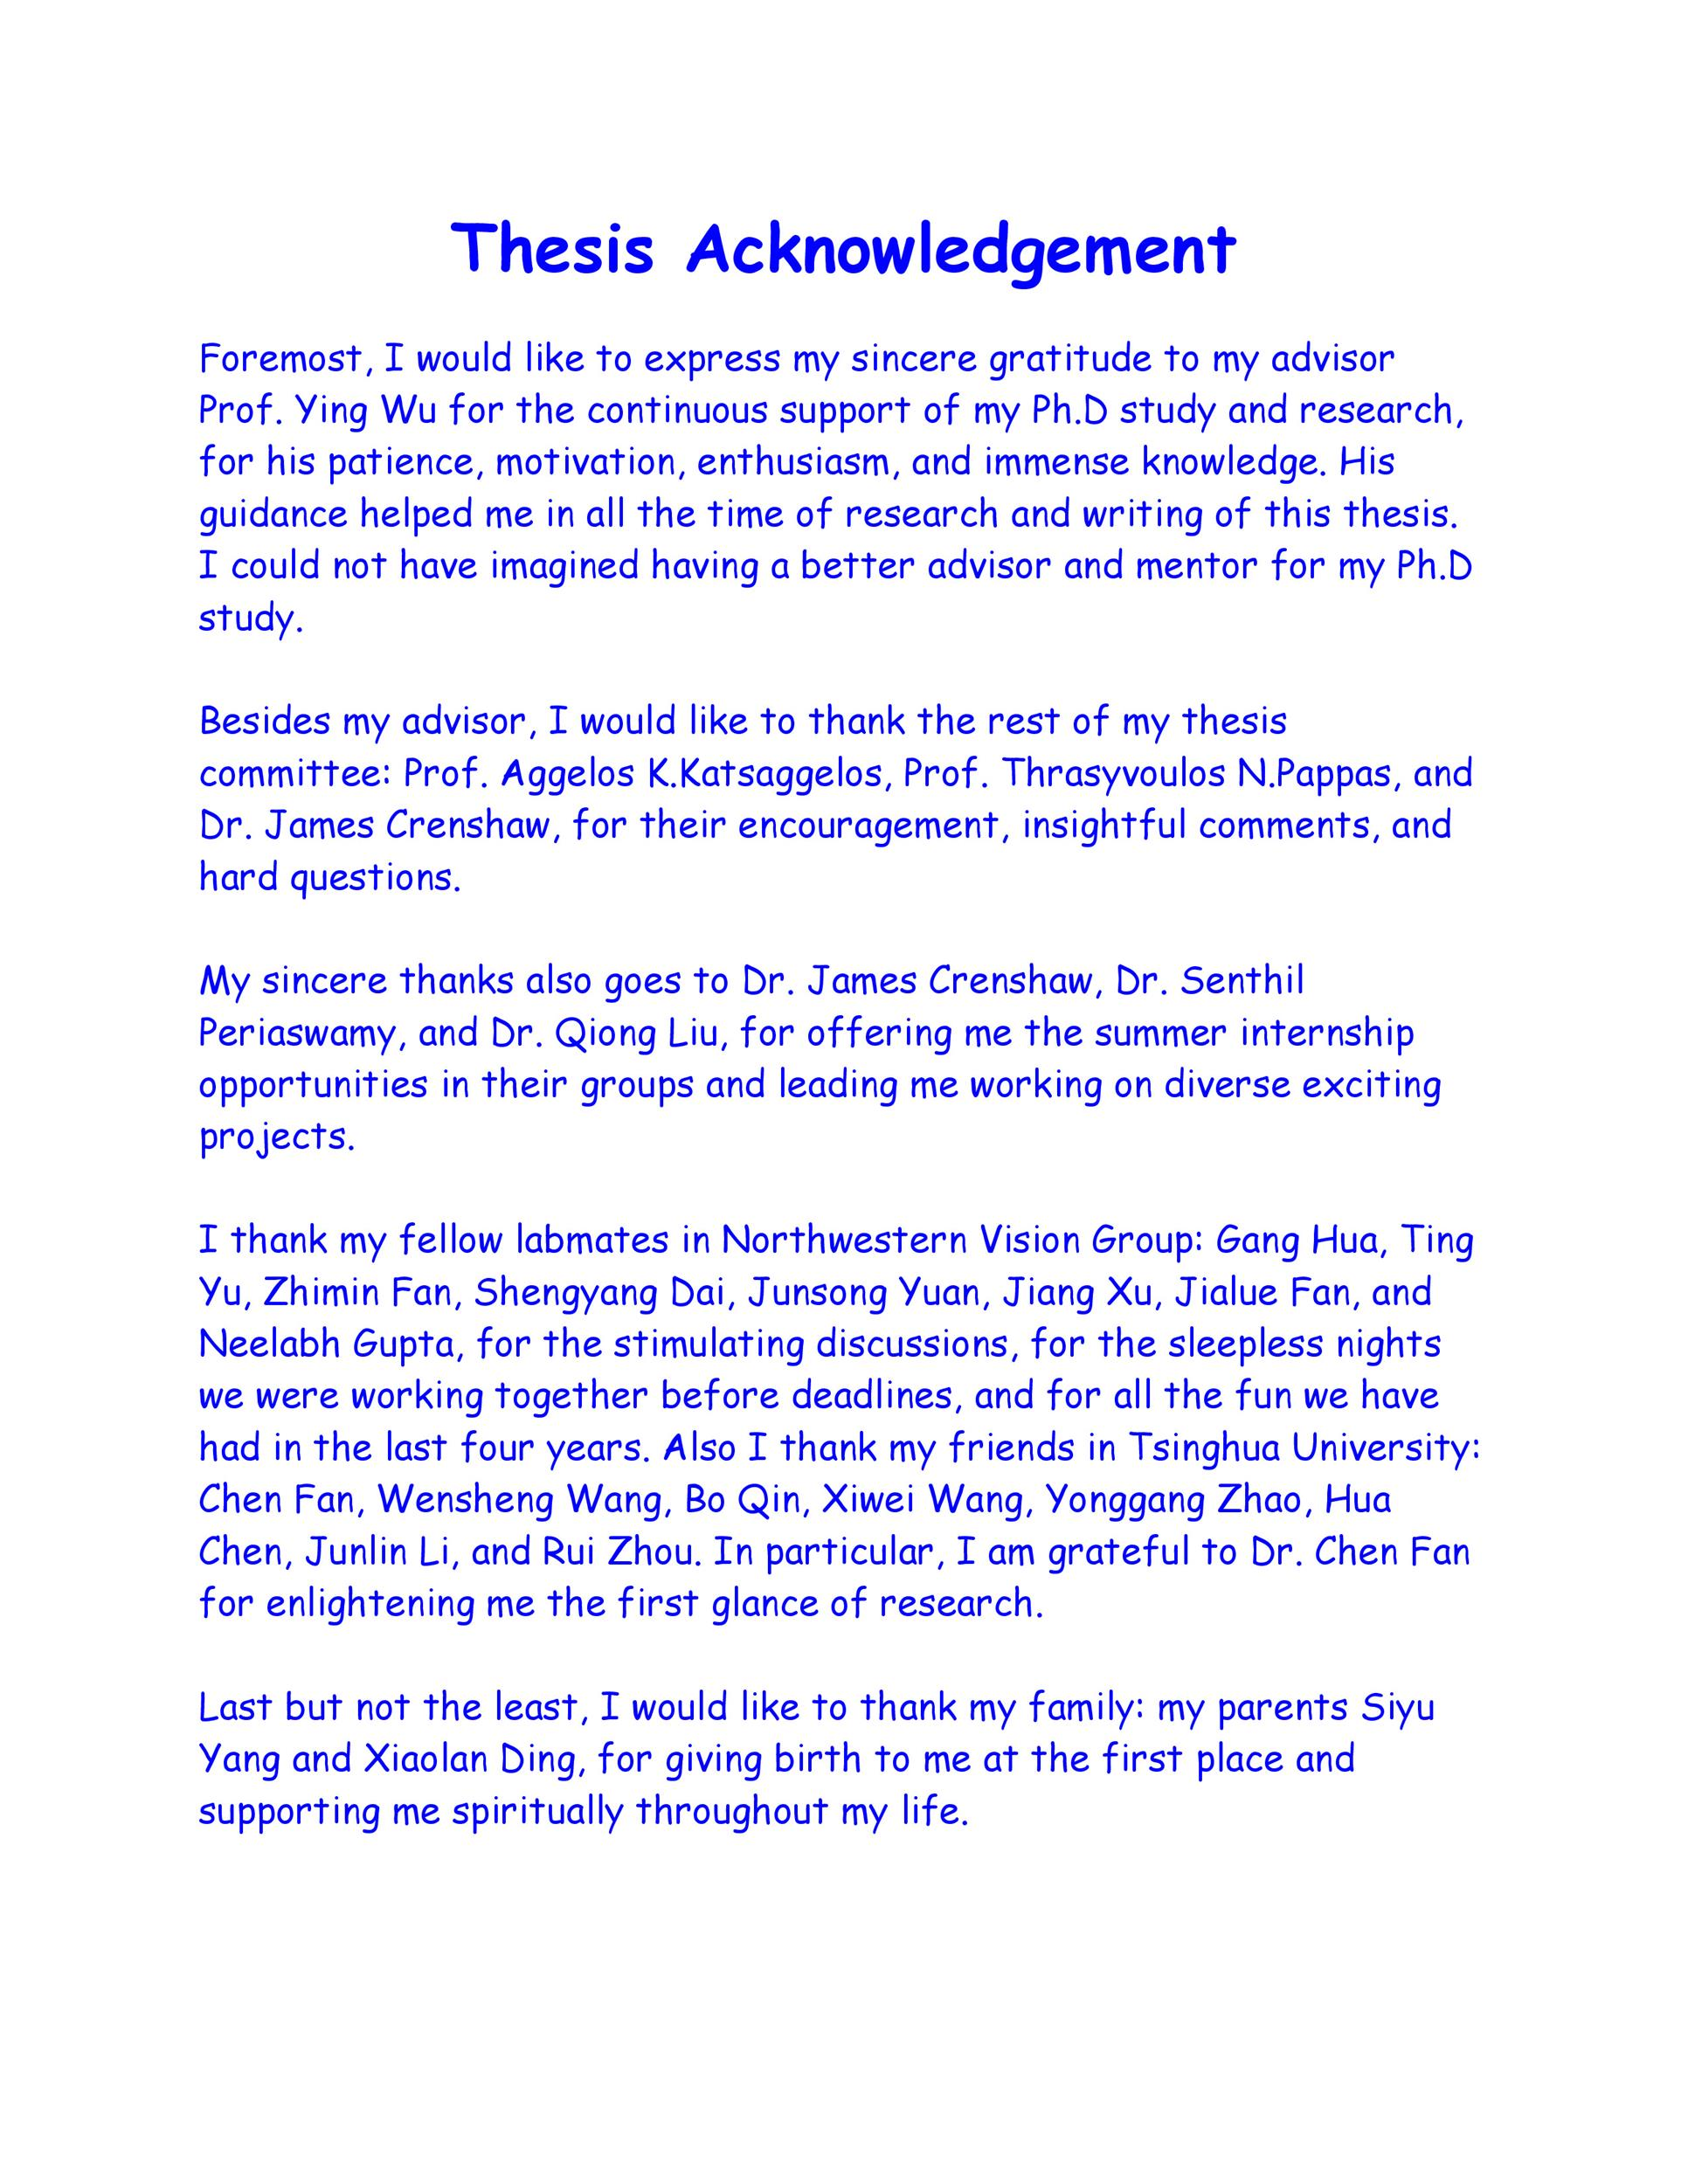 Free acknowledgement sample 04